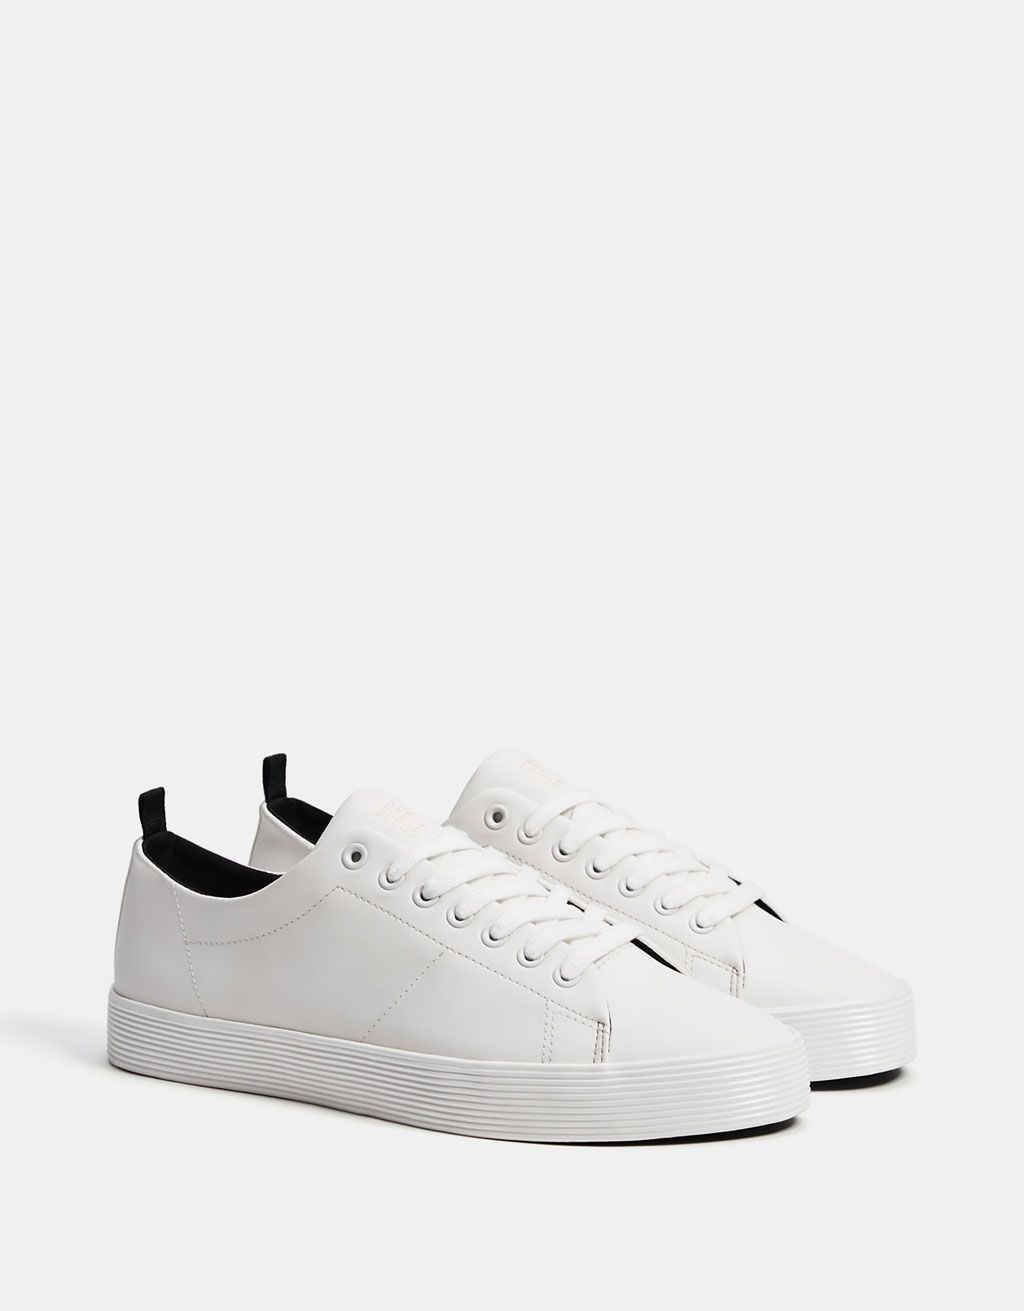 timeless design 56c3e e20d6 Men s monochrome sneakers with textured soles - SHOES - Bershka United  States